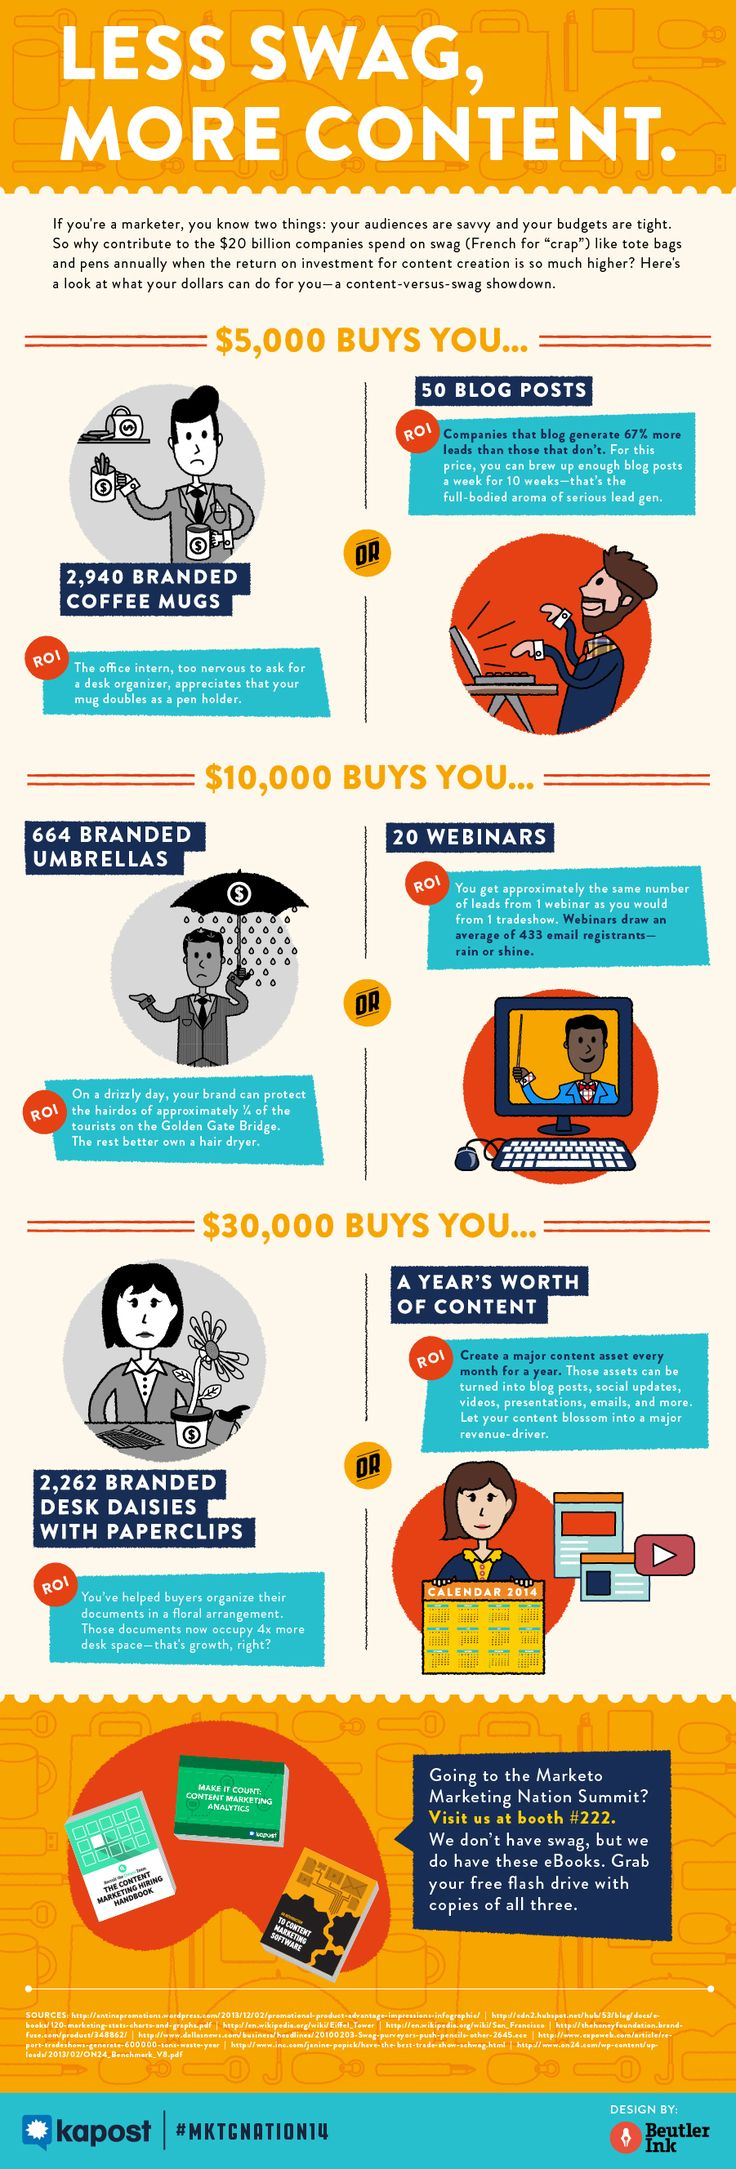 What Your #Marketing Dollars can do for You - A Content vs Swag Showdown - #contentmarketing | #infographics repinned by @Piktochart